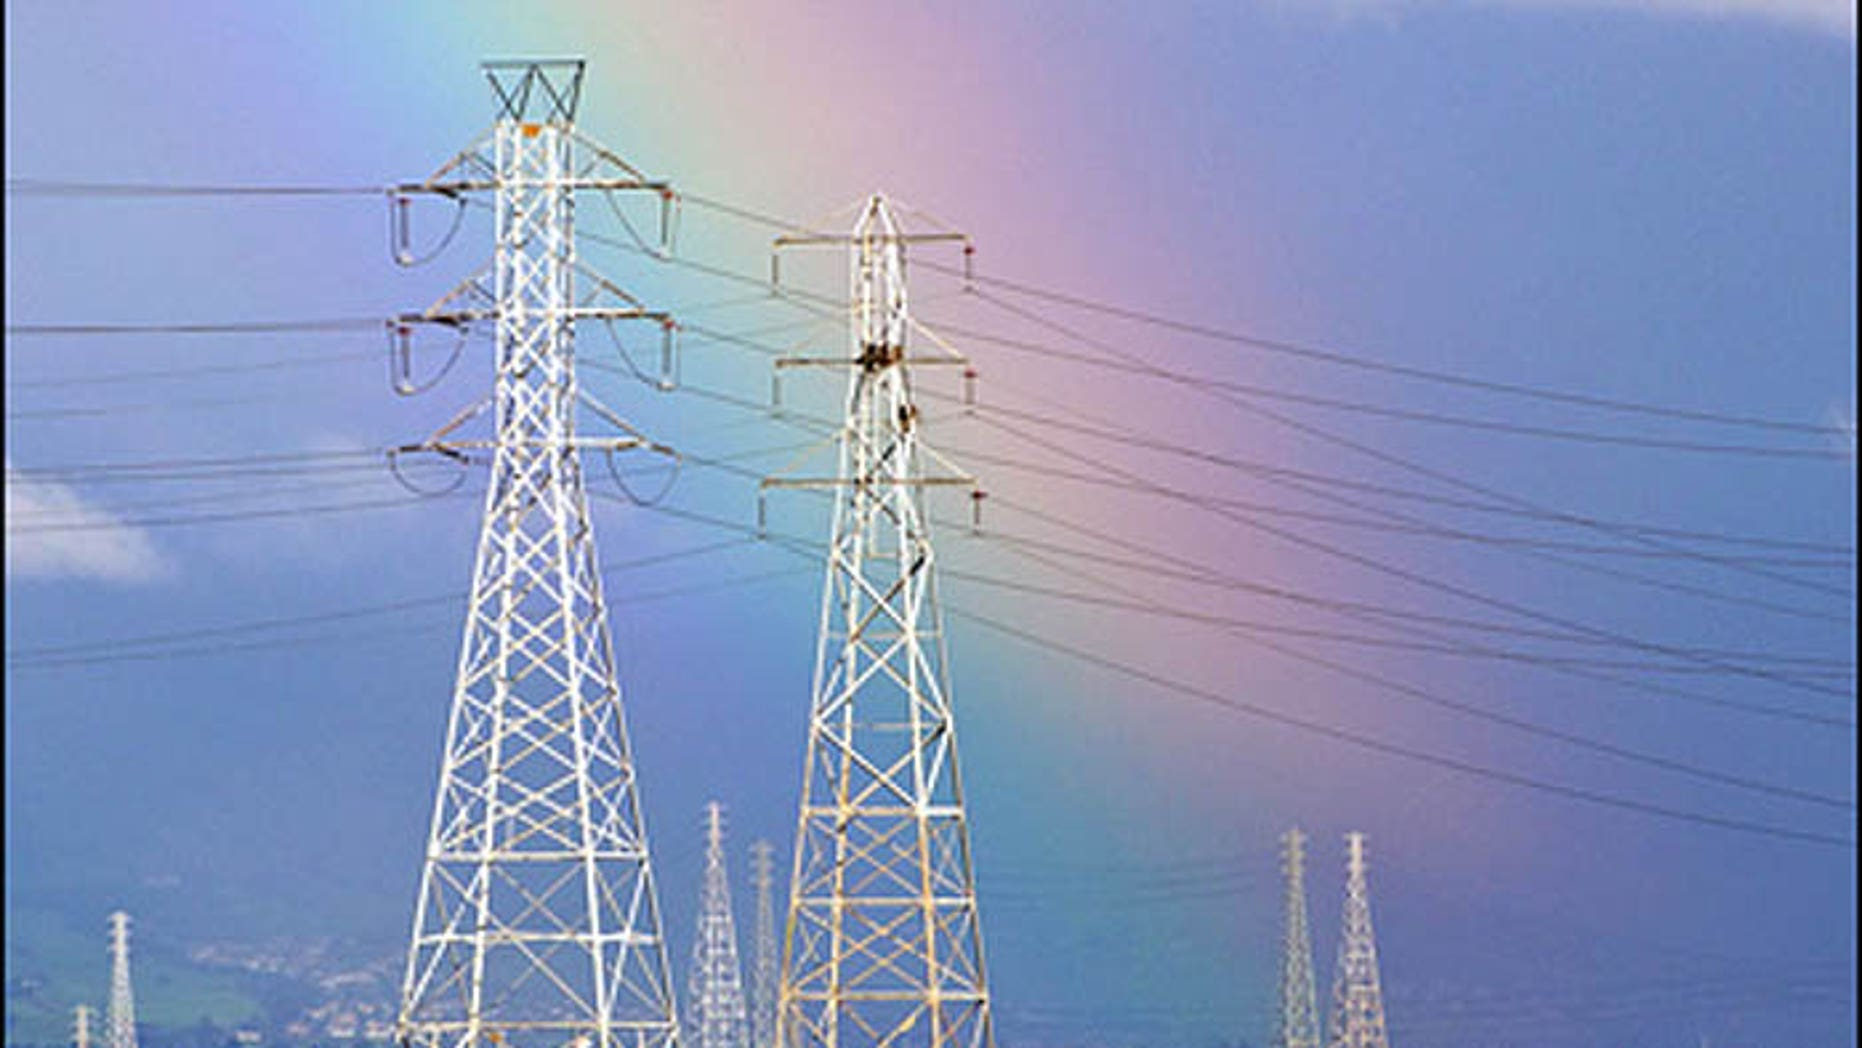 Experts say the U.S. power grid is vulnerable to an attack. (The Associated Press)